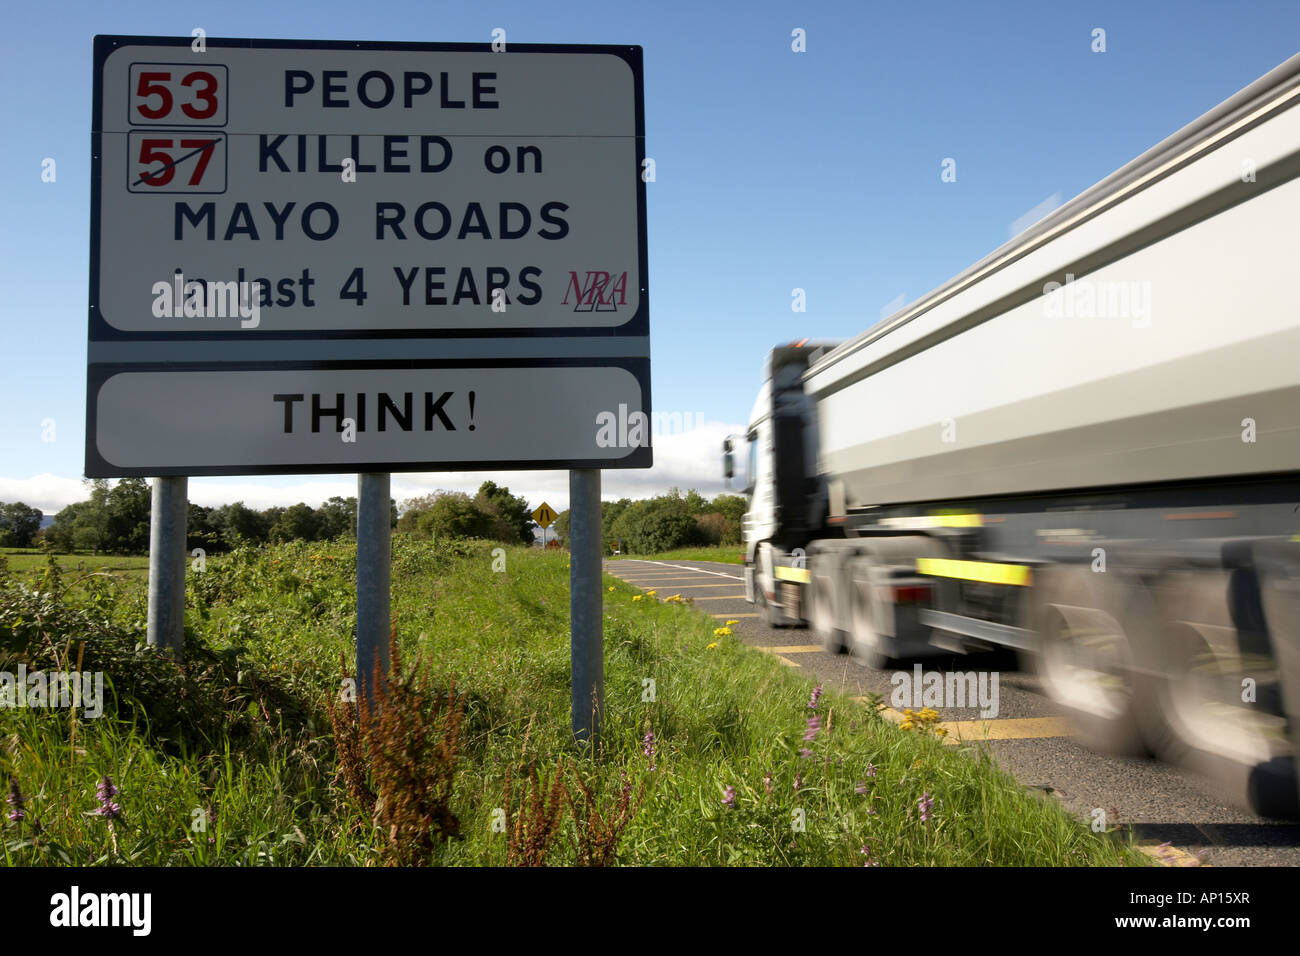 53 57 crossed out people killed on Mayo road in last 4 years sign County Mayo Republic of Ireland Stock Photo